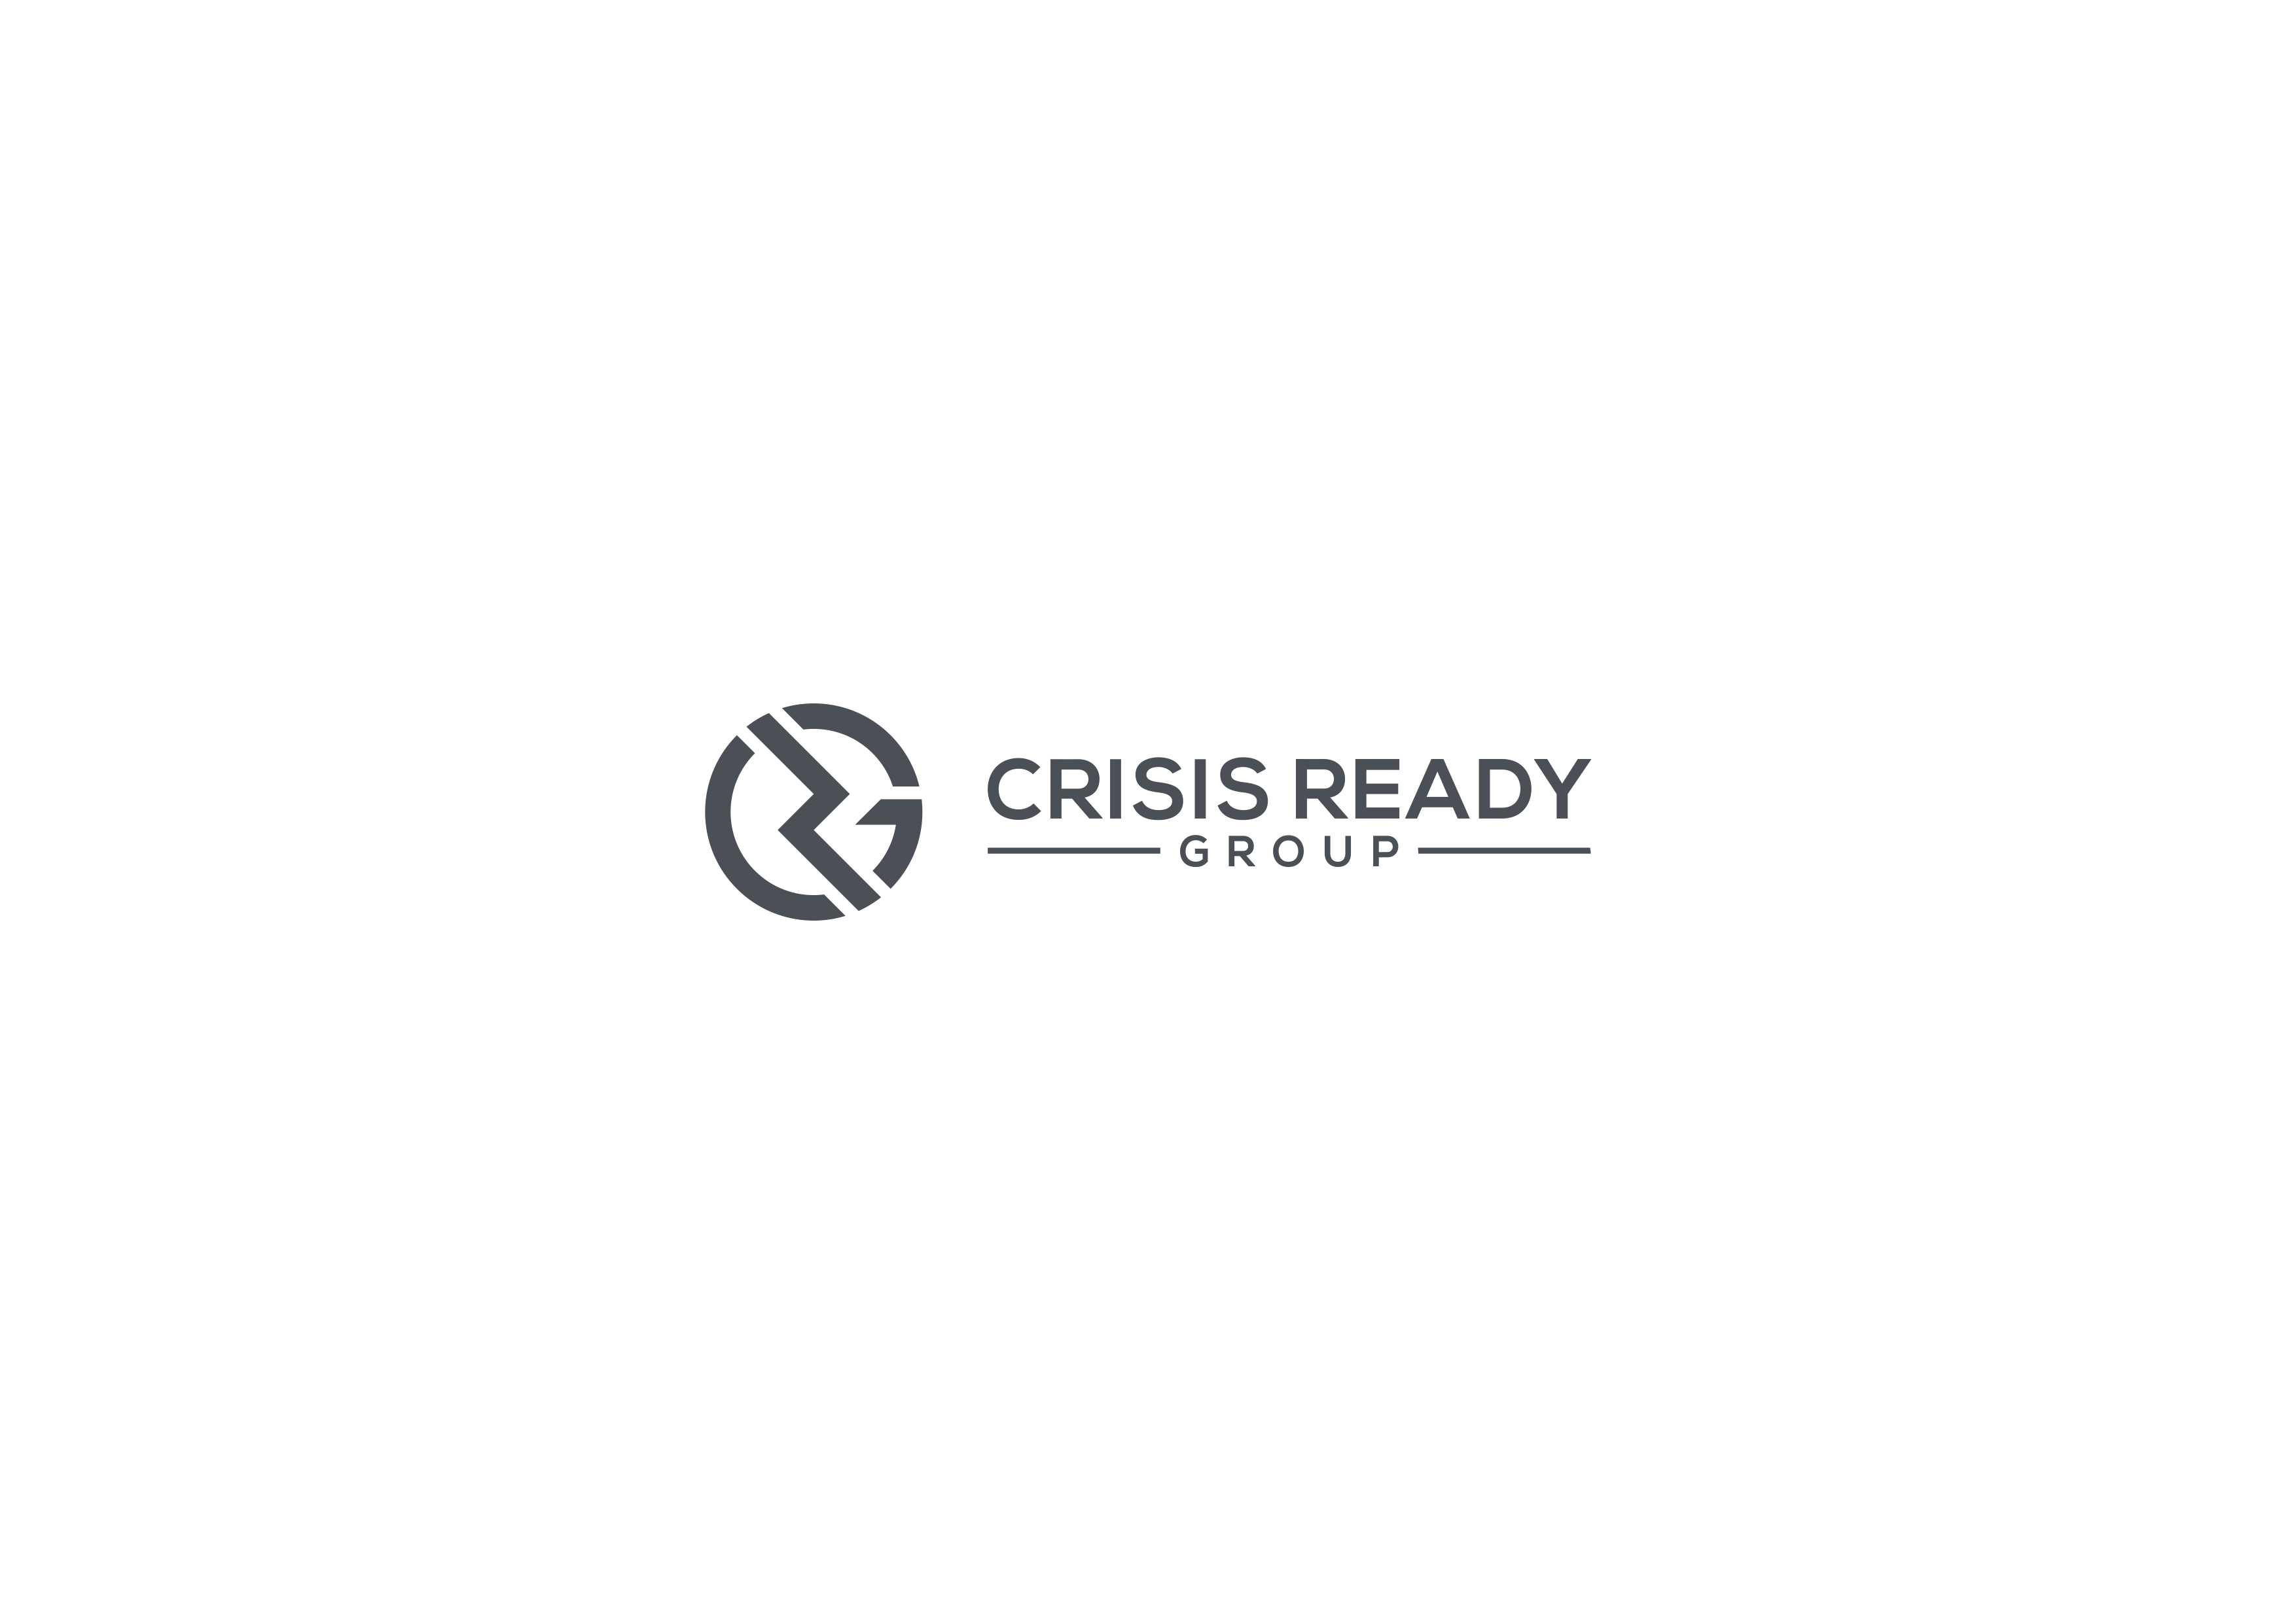 Professional and precise logo needed for a crisis management group